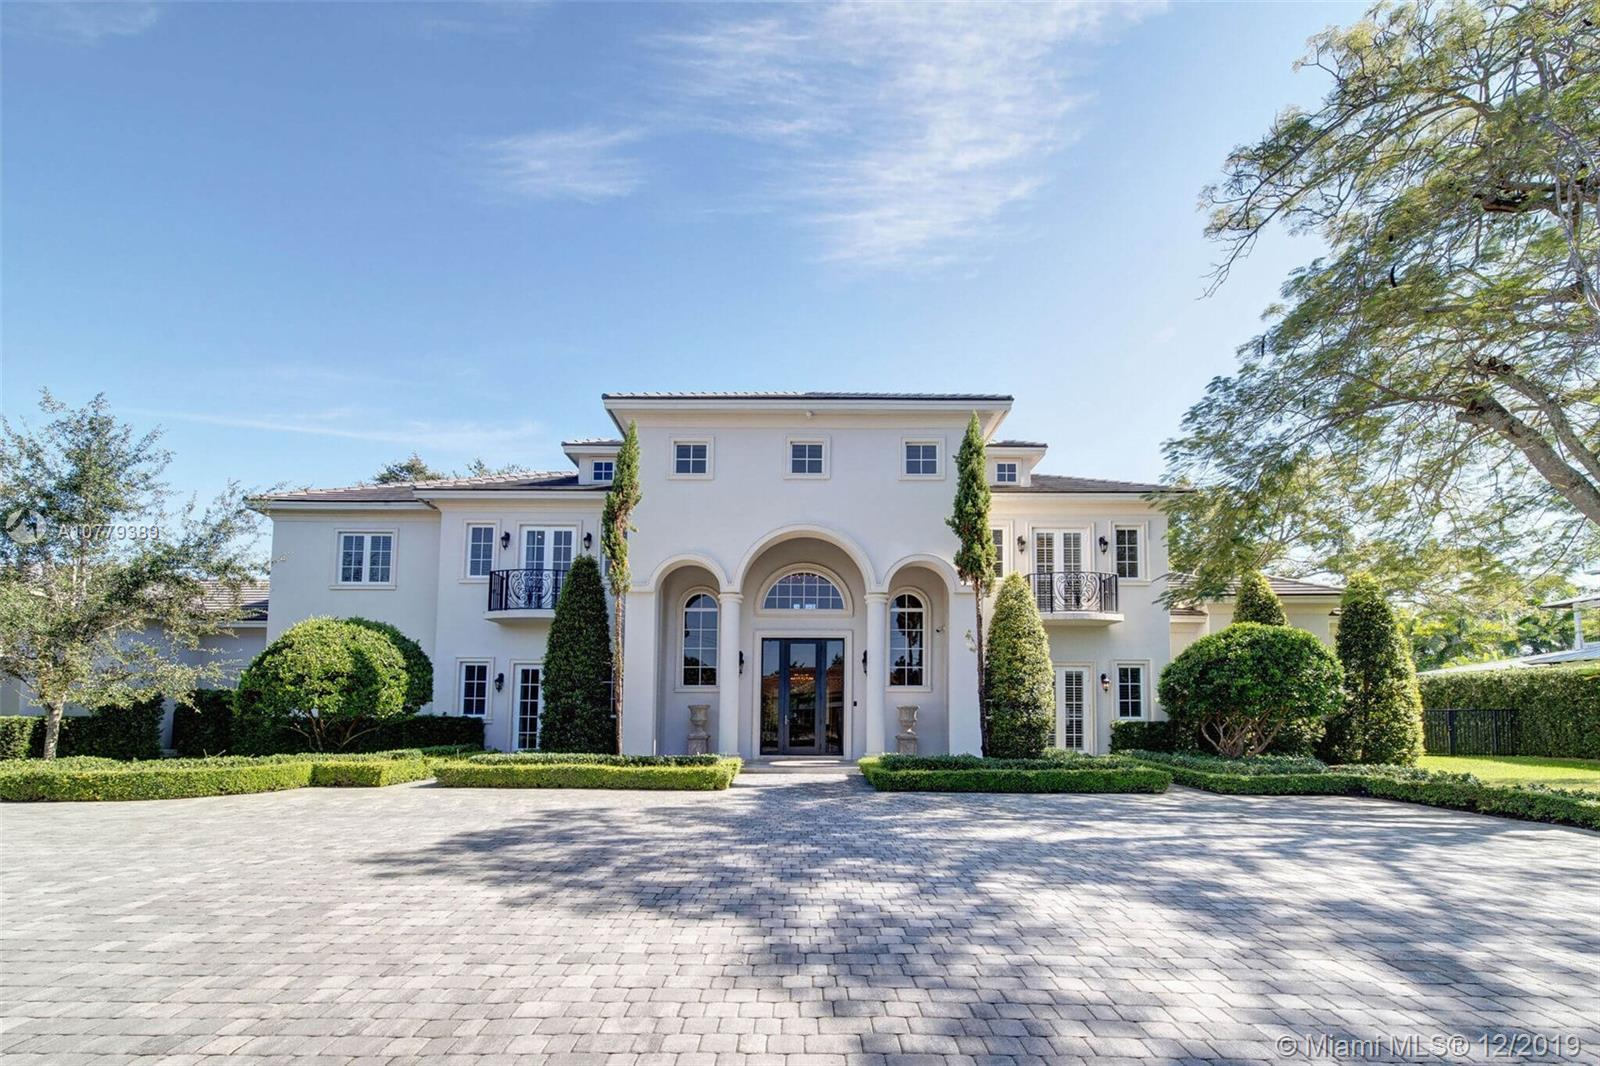 10915 SW 62nd Ave, Pinecrest, FL, 33156